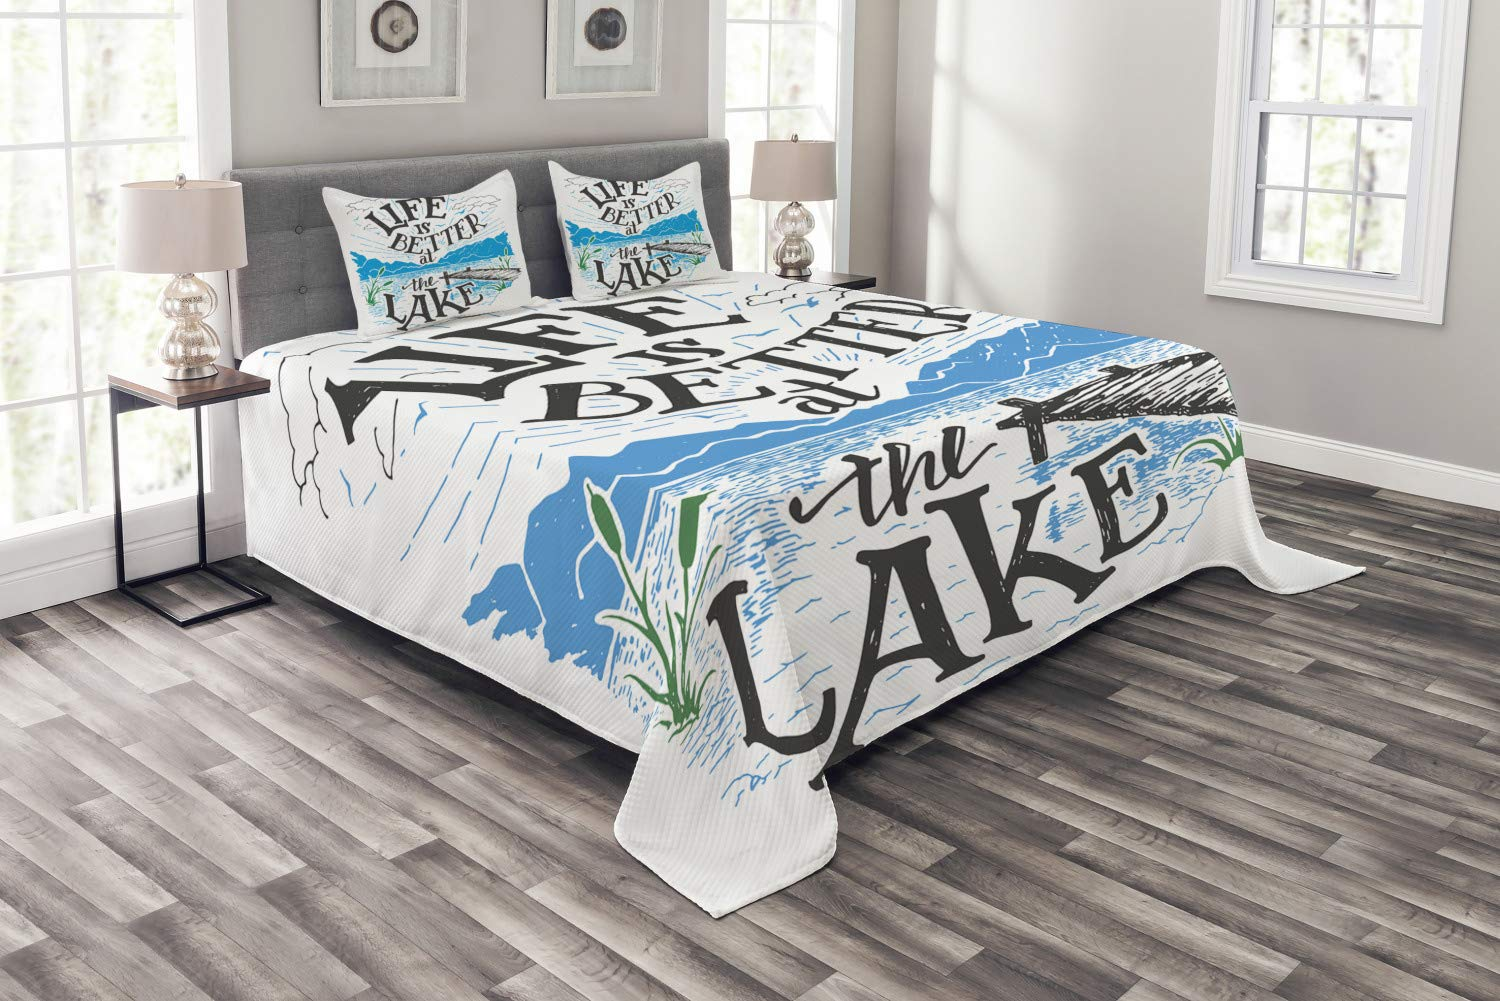 Lunarable Cabin Bedspread, Life is Better at The Lake Wooden Pier Plants Mountains Sketch Art, Decorative Quilted 3 Piece Coverlet Set with 2 Pillow Shams, Queen Size, Charcoal Grey